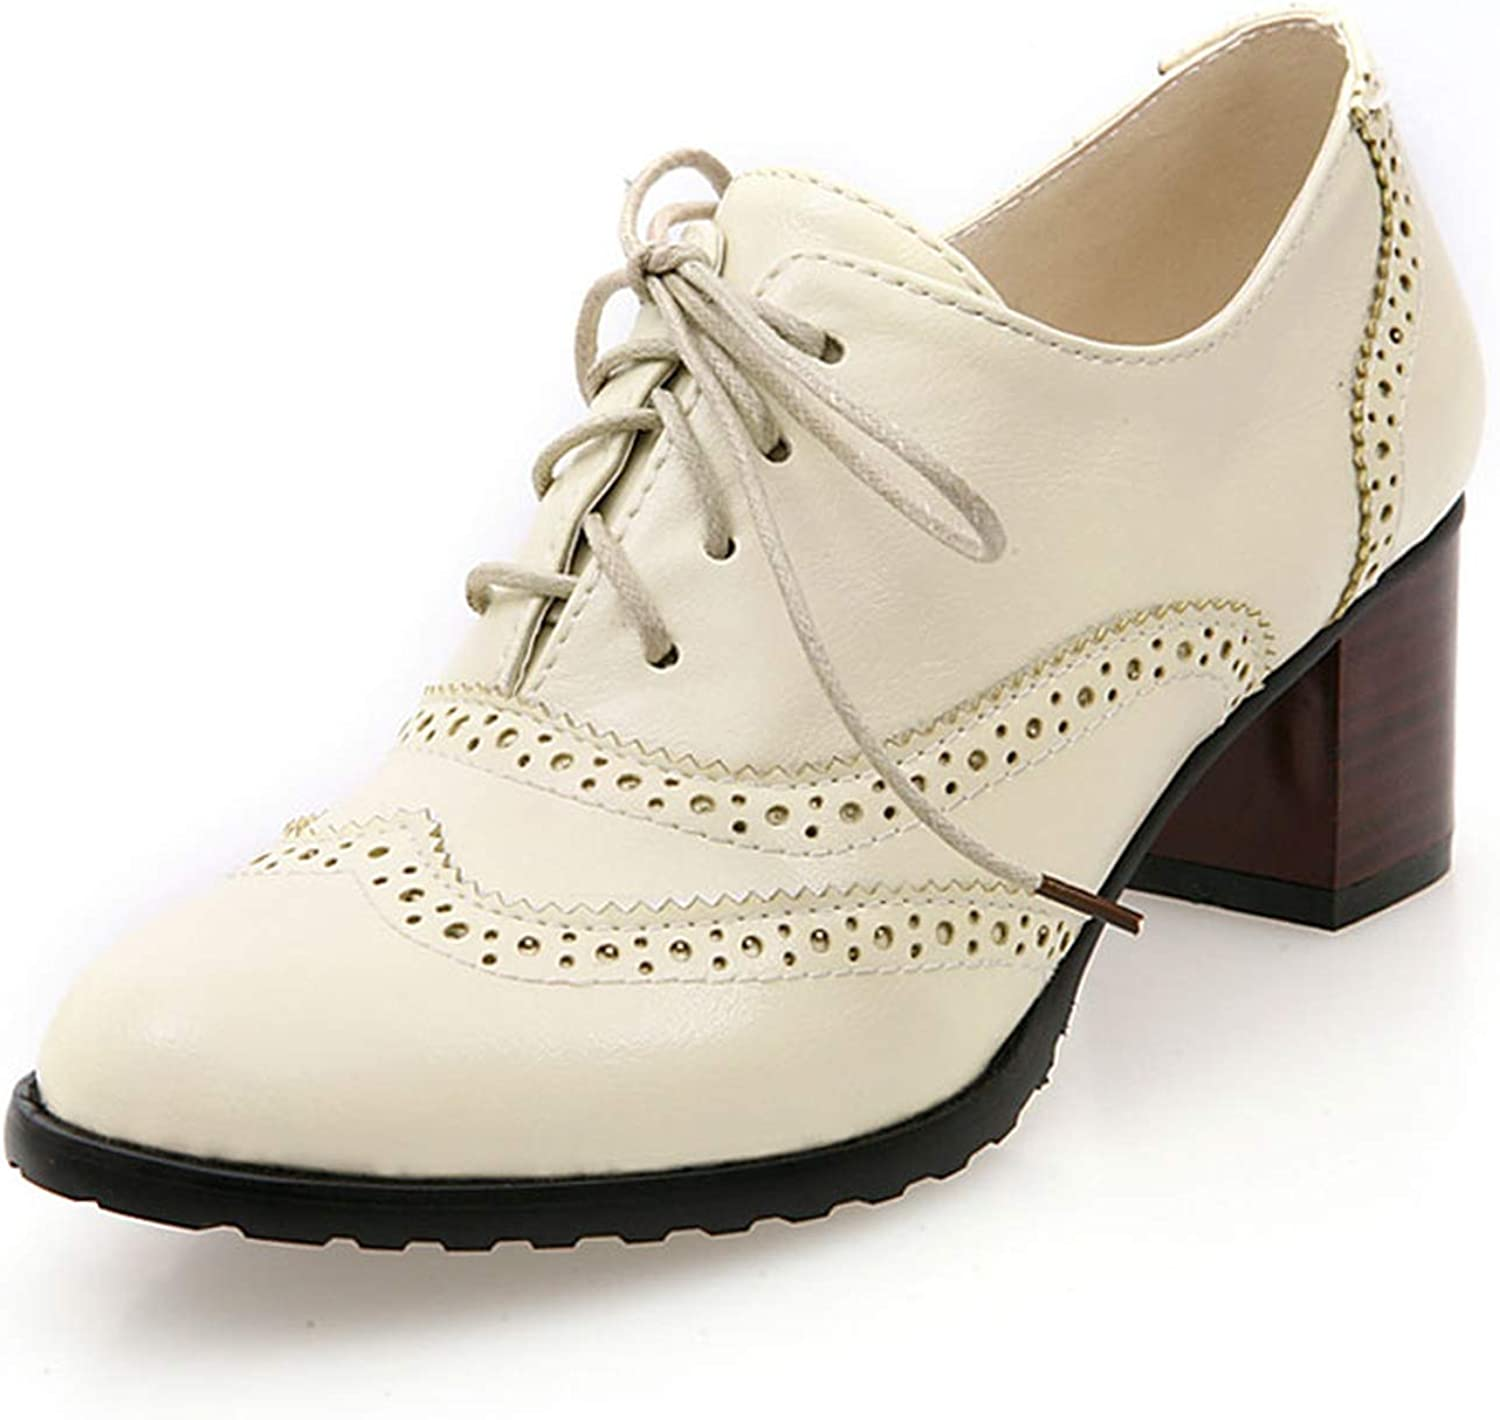 Mao YiE New Women's Winged Oxford Lace Up Striped Platform Vintage Bullock shoes